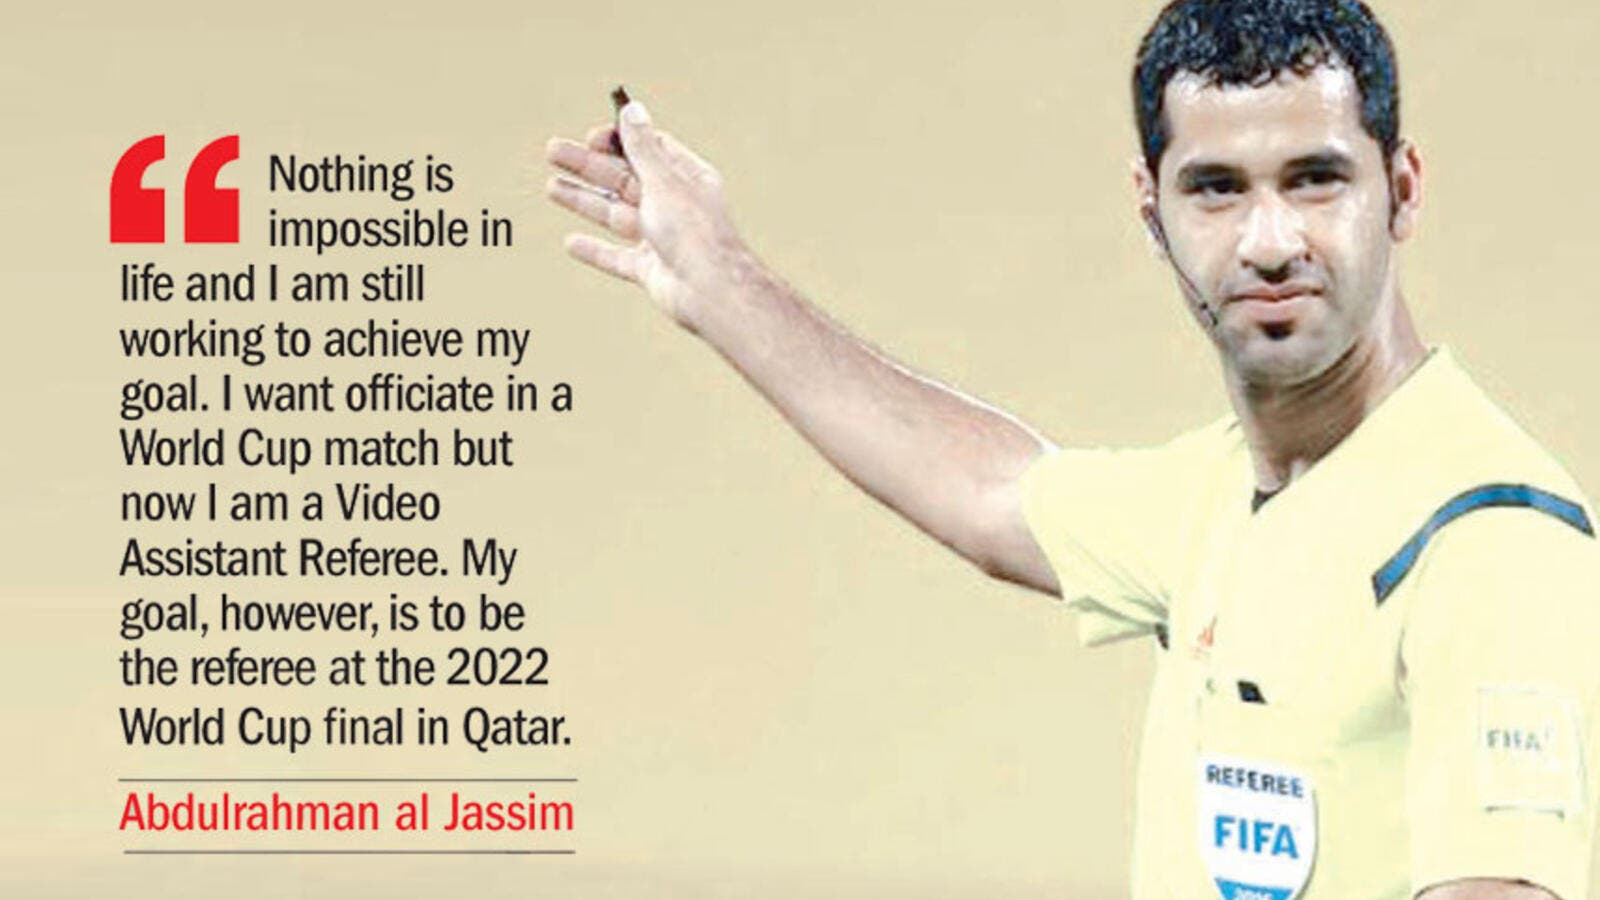 Qatari referee Abdulrahman al Jassim (Photo: Qatar Tribune)